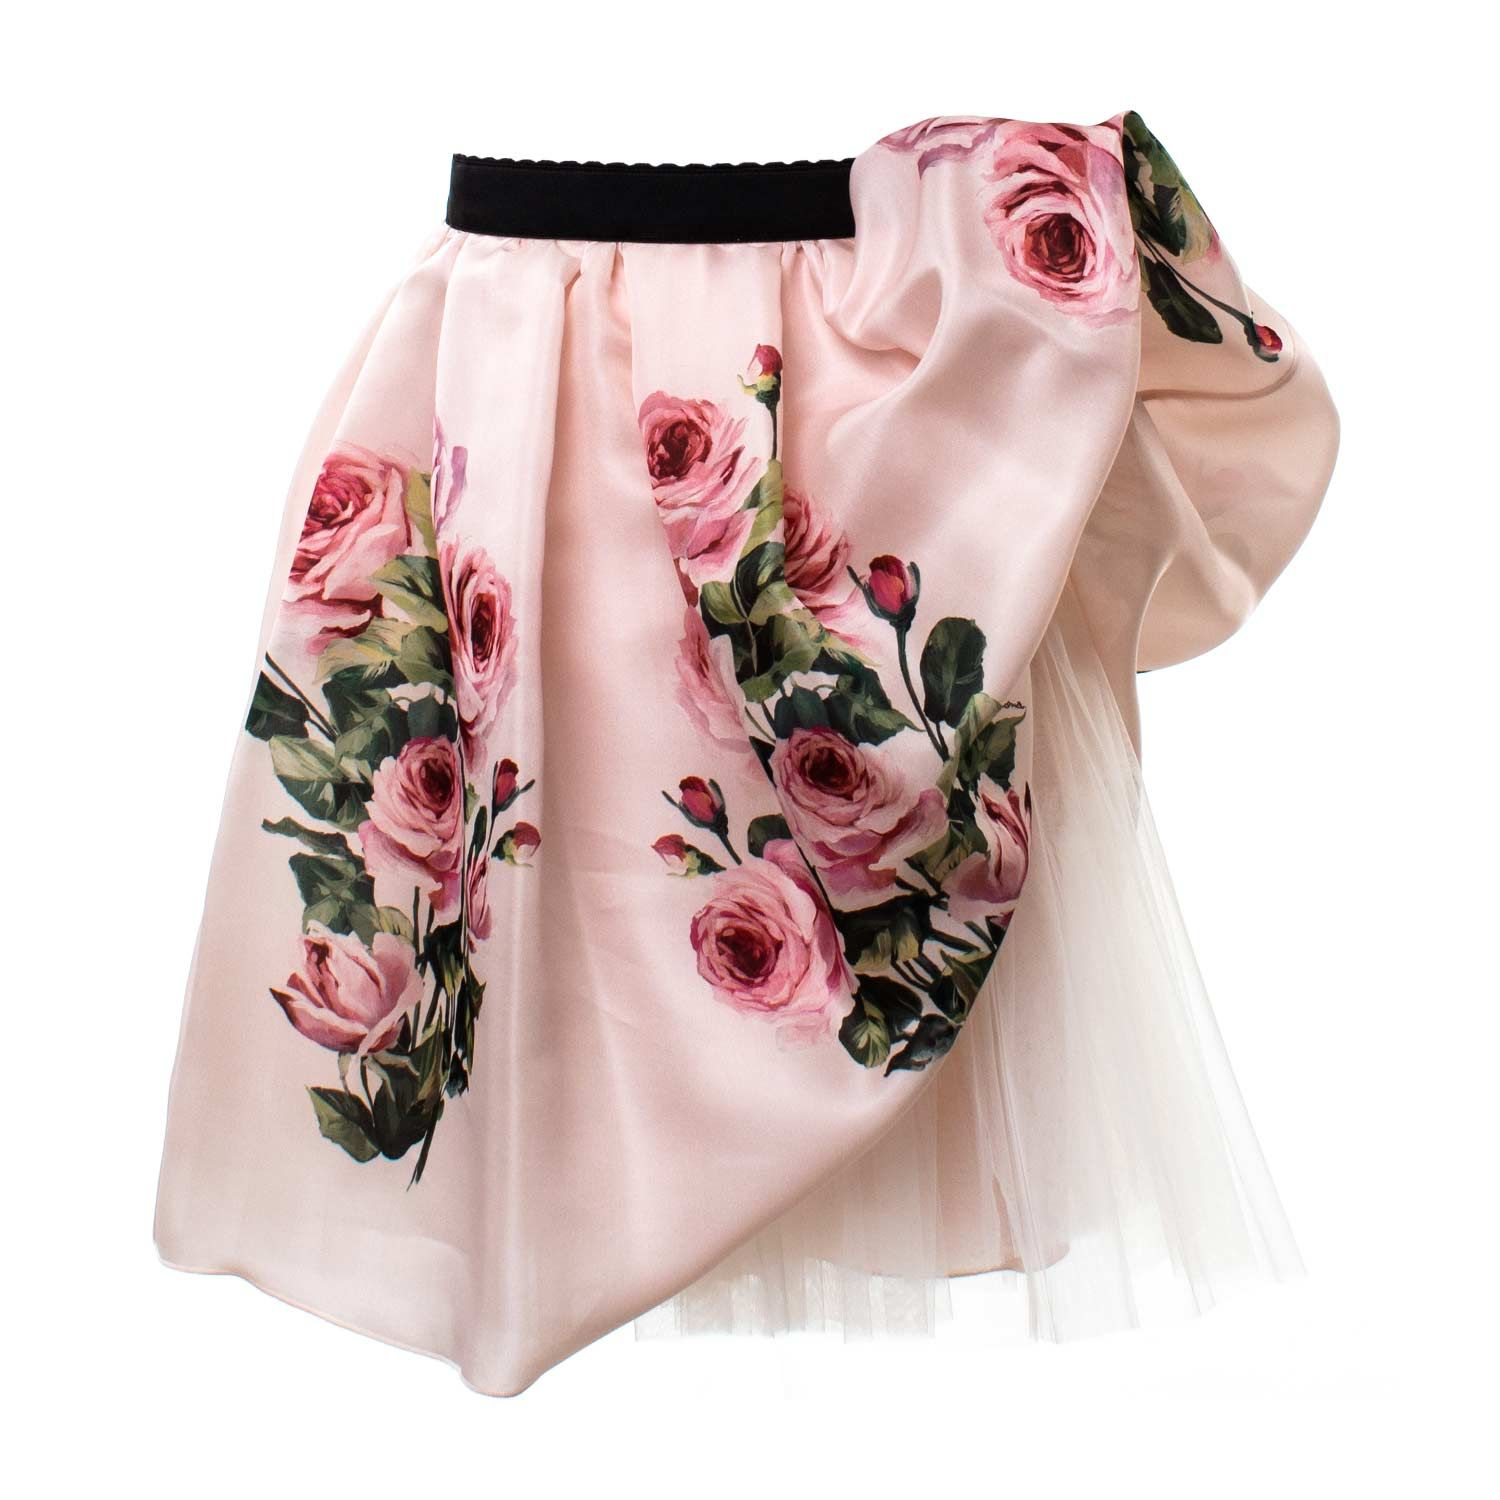 Dolce   Gabbana - Gonna Bambina In Seta Rosa - Raffinata gonna